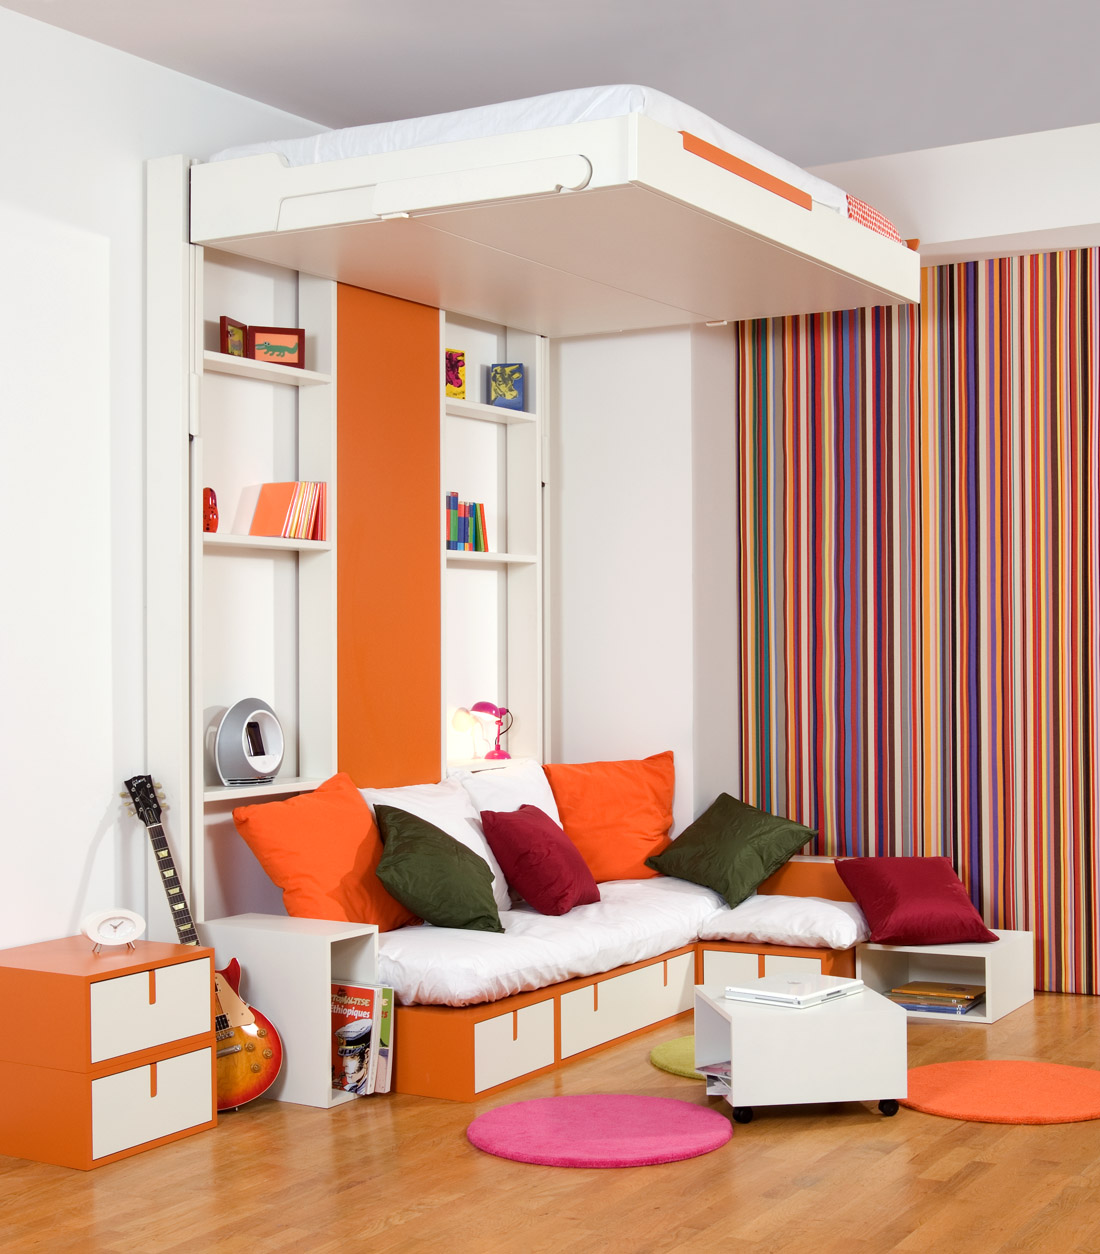 Mezzanine Bed Design 10 great space-saving beds - living in a shoebox